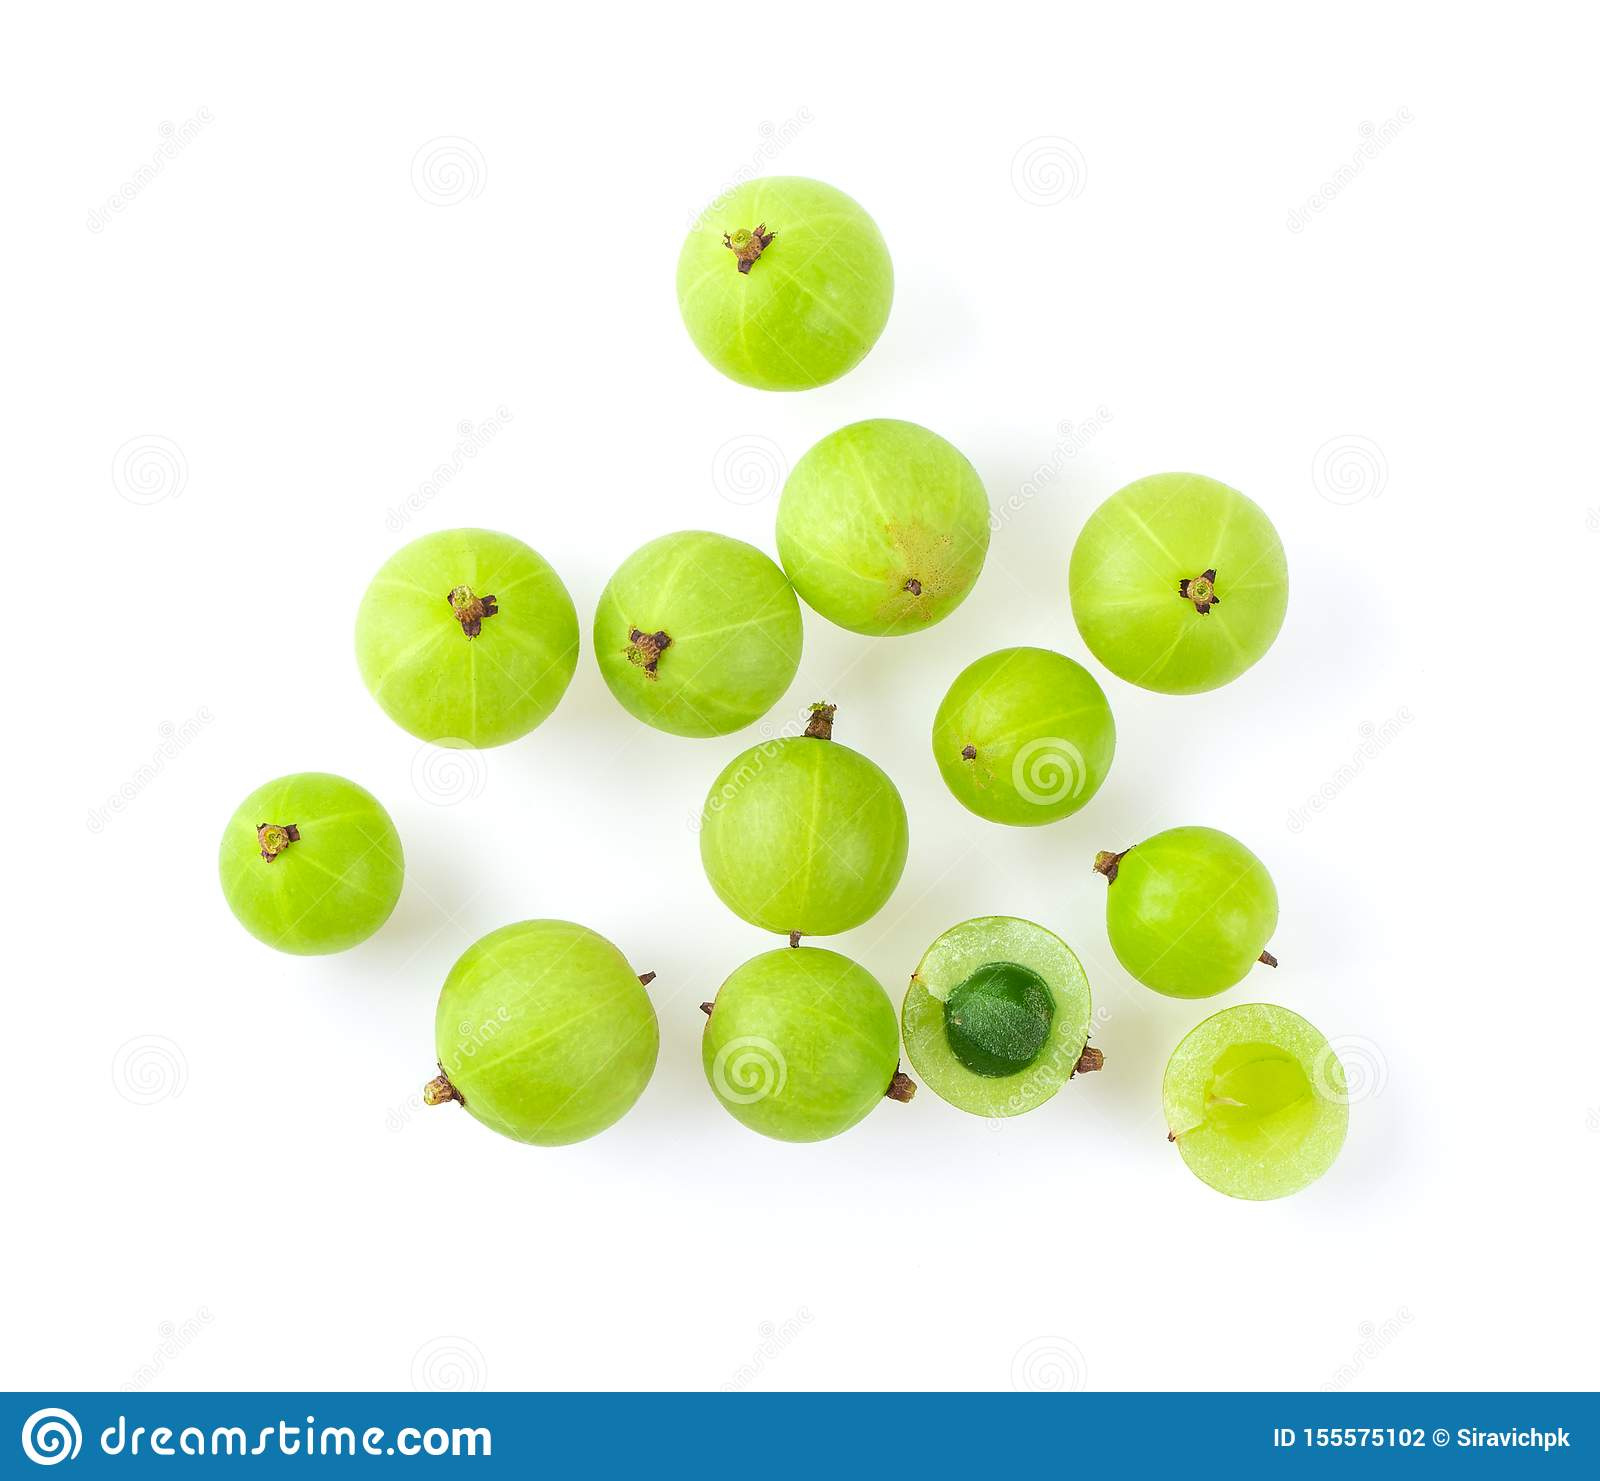 Indian gooseberry on white background.